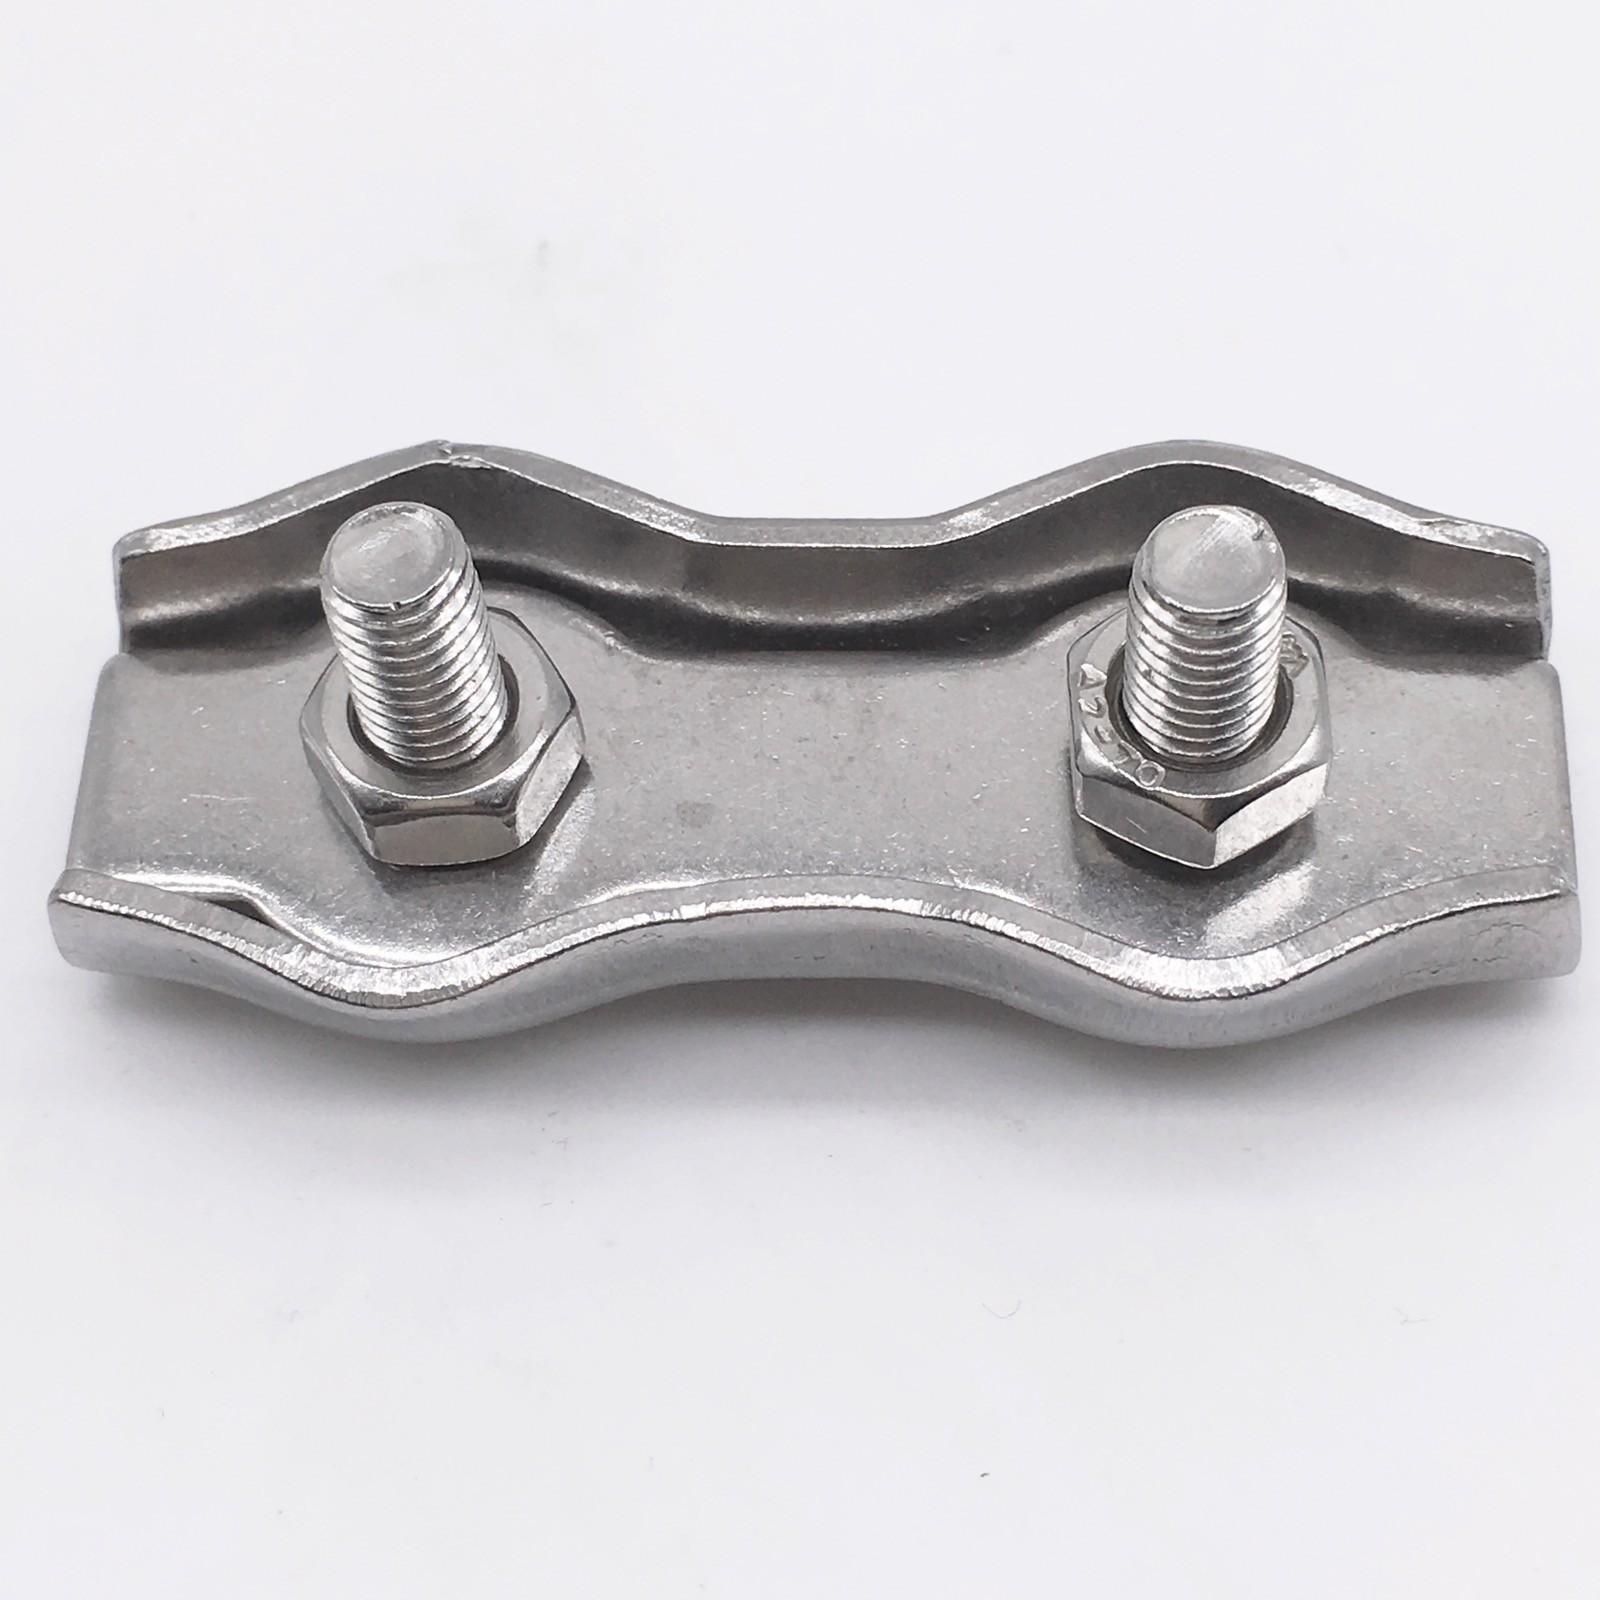 M stainless steel duplex post wire rope clip cable